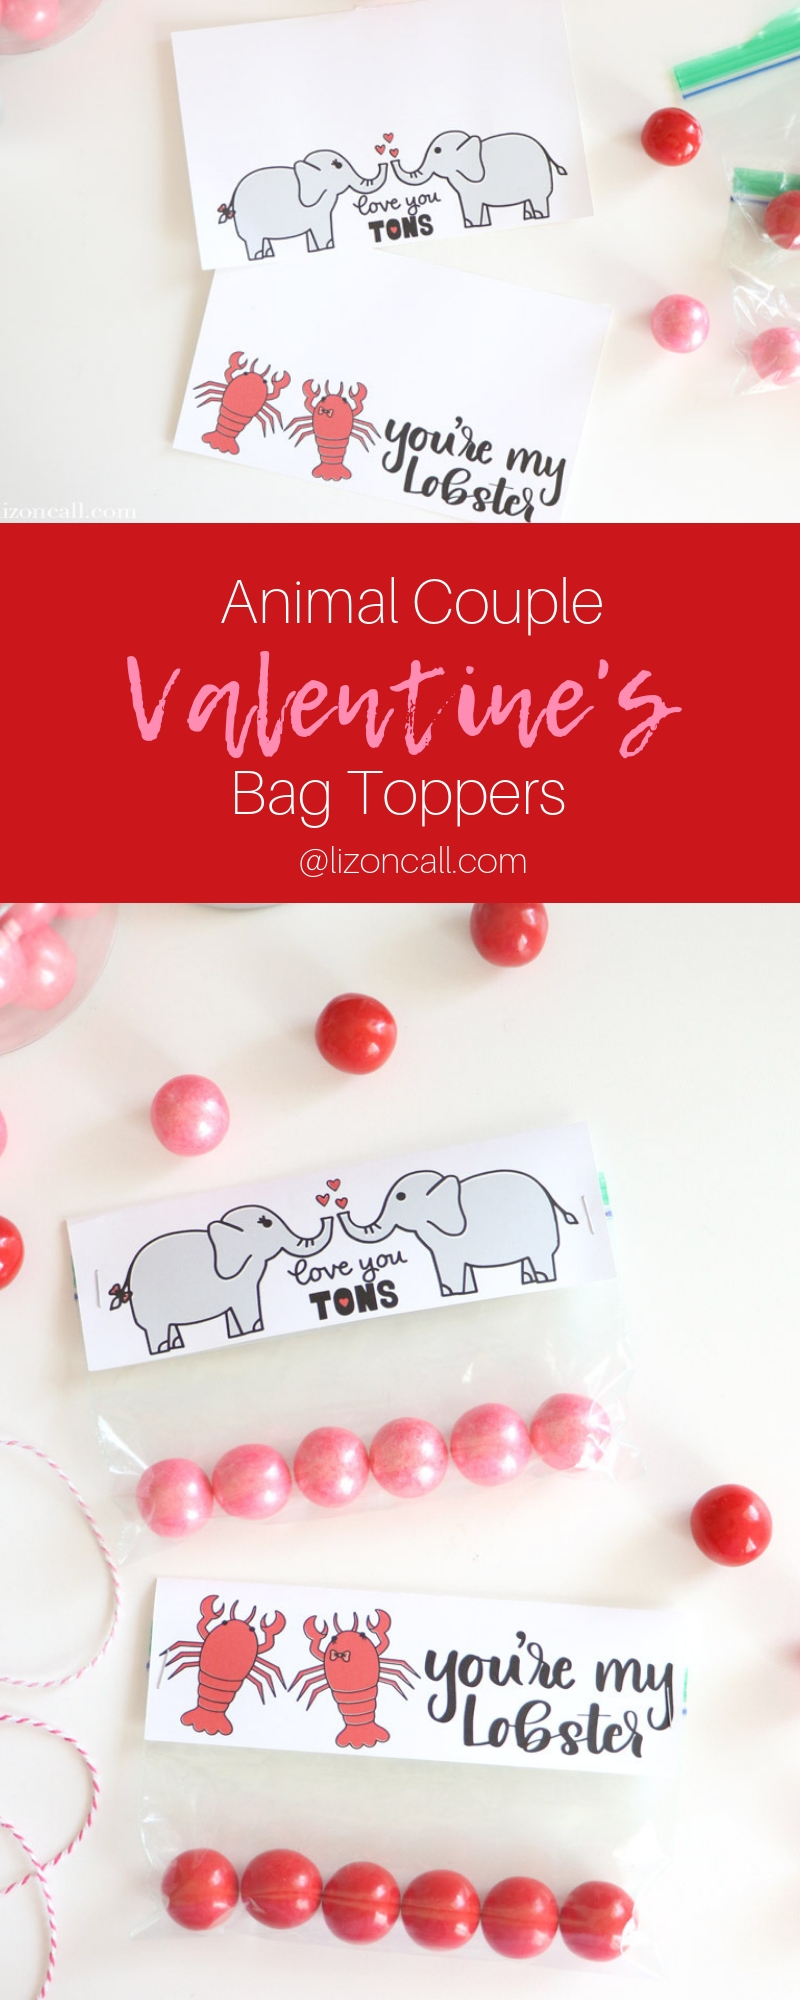 Use your favorite Valentine's cut files to create these Valentine's Bag Toppers and make easy Valentine's treats for classrooms, friends, neighbors and loved ones. #valentinesday #candyvalentine